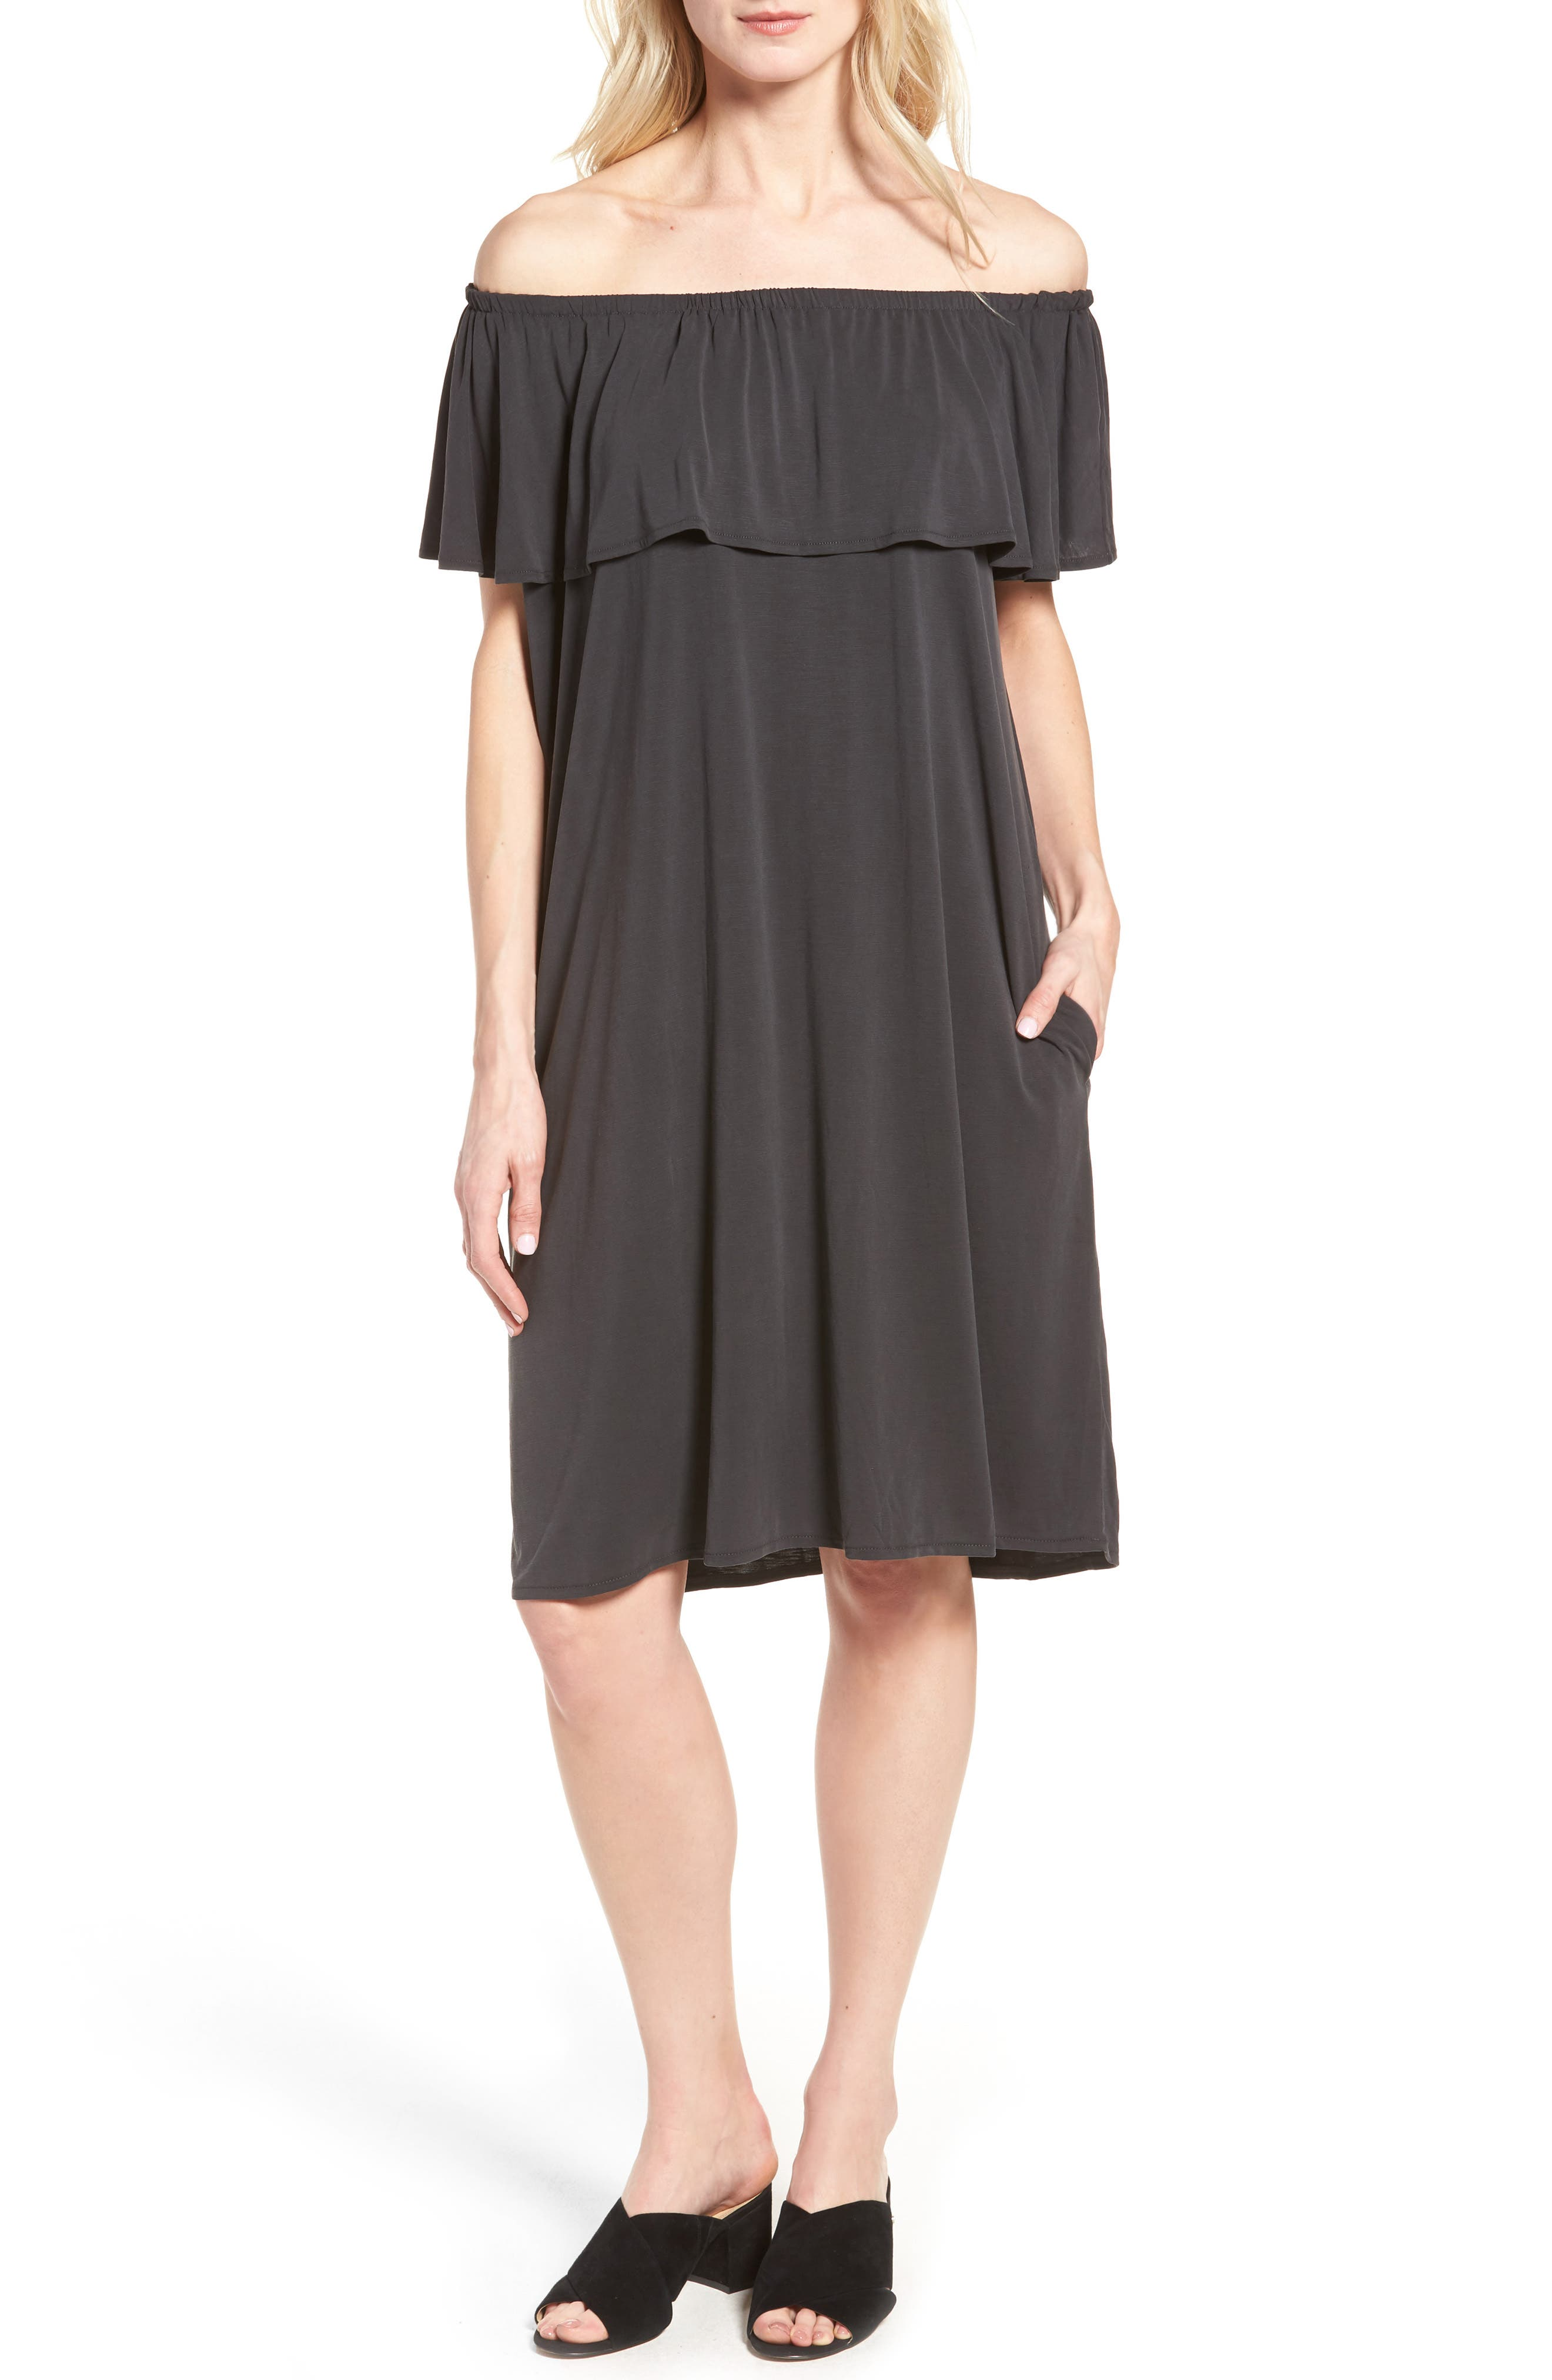 Boardwalk Convertible Jersey Dress,                         Main,                         color, 006